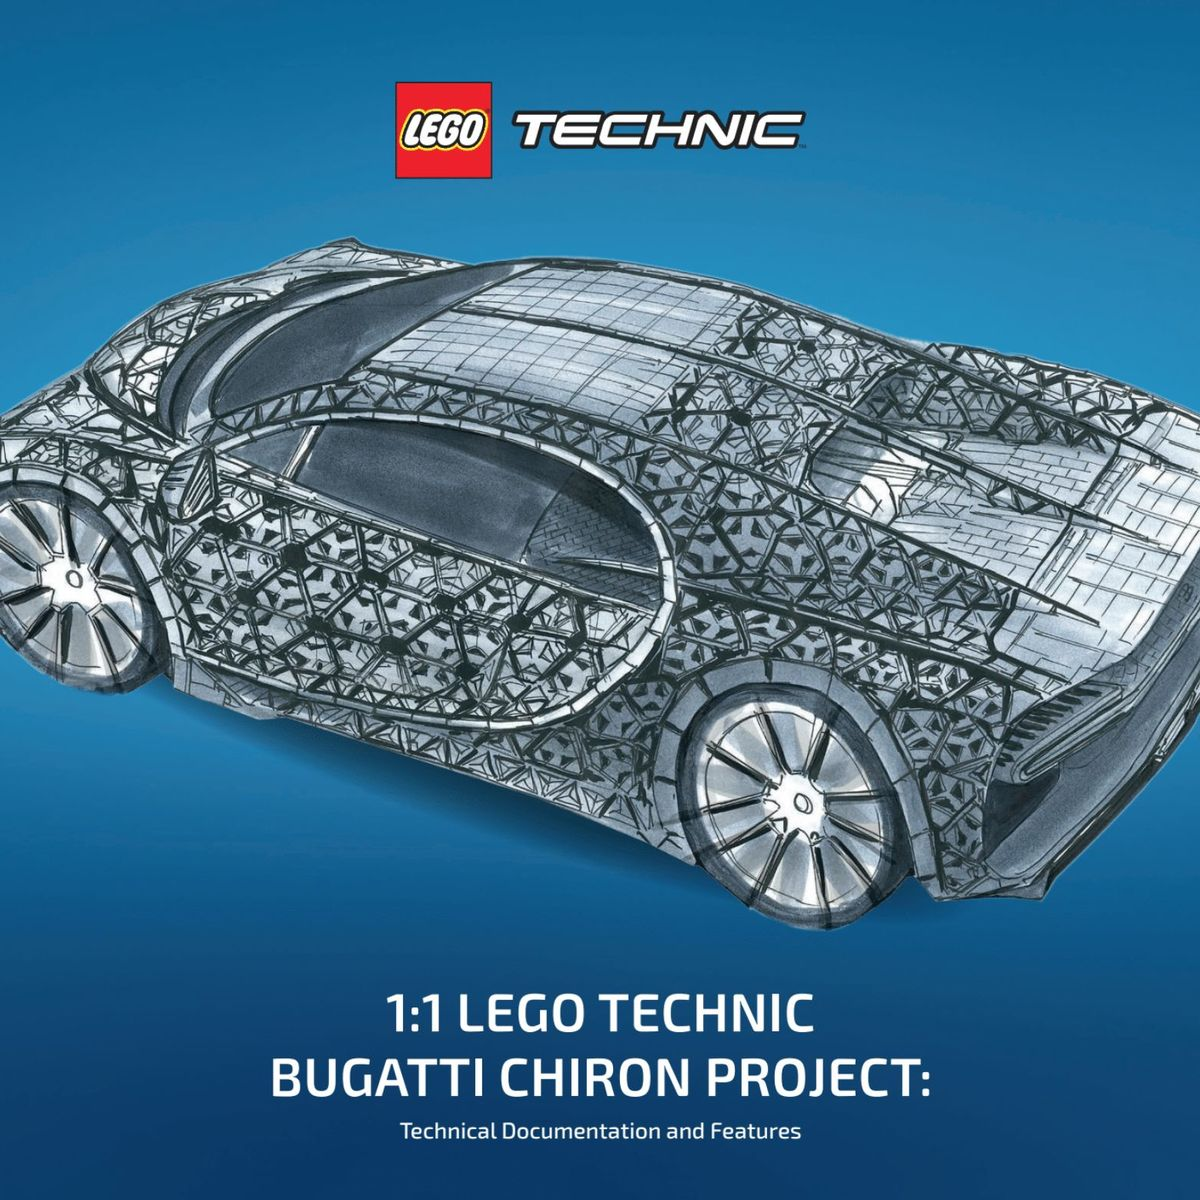 There's Now A Life-Size, Driveable Lego Technic Bugatti Chiron